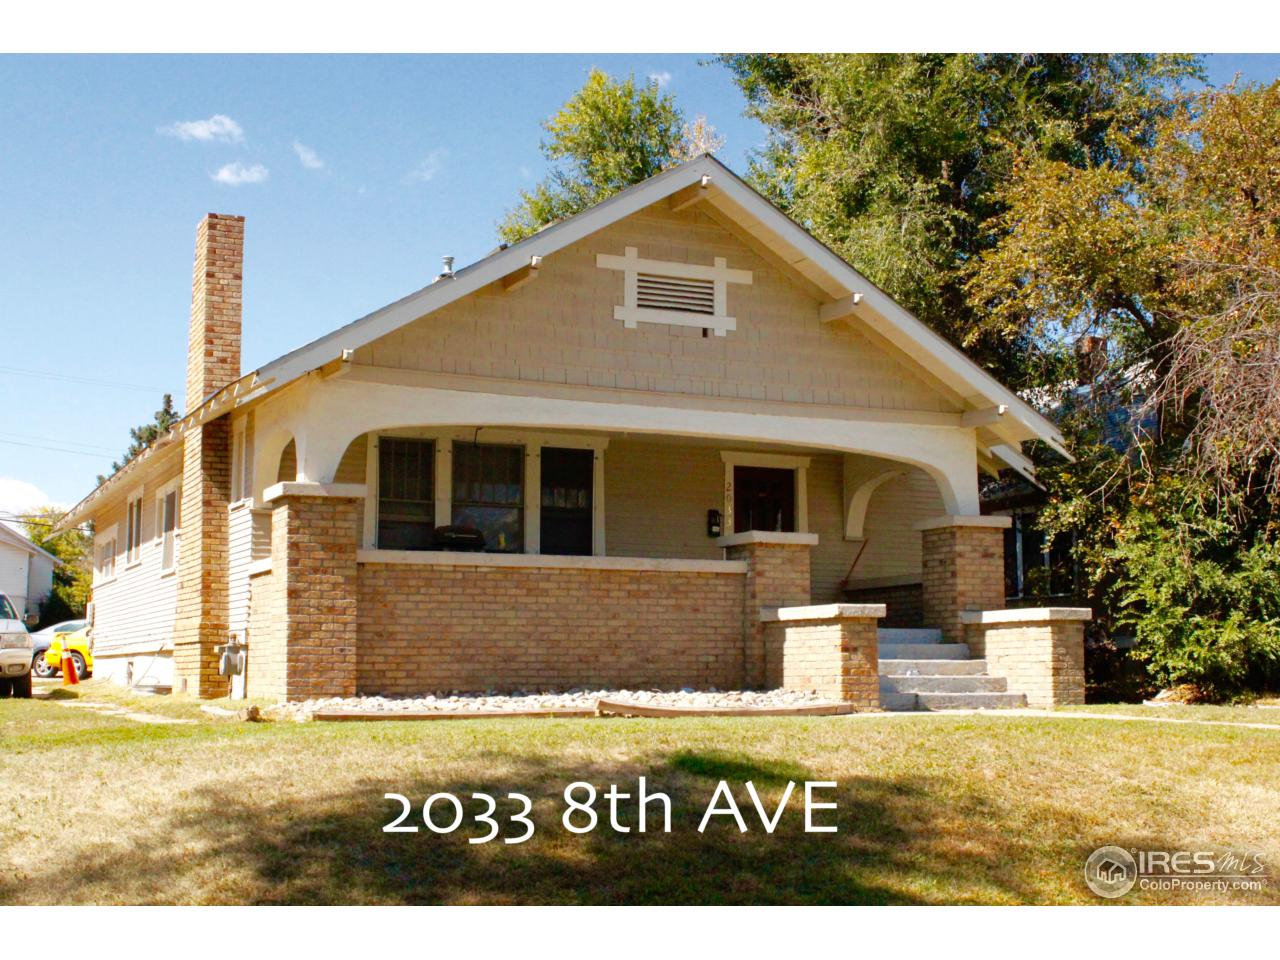 2033 8th Ave, Greeley, CO 80631